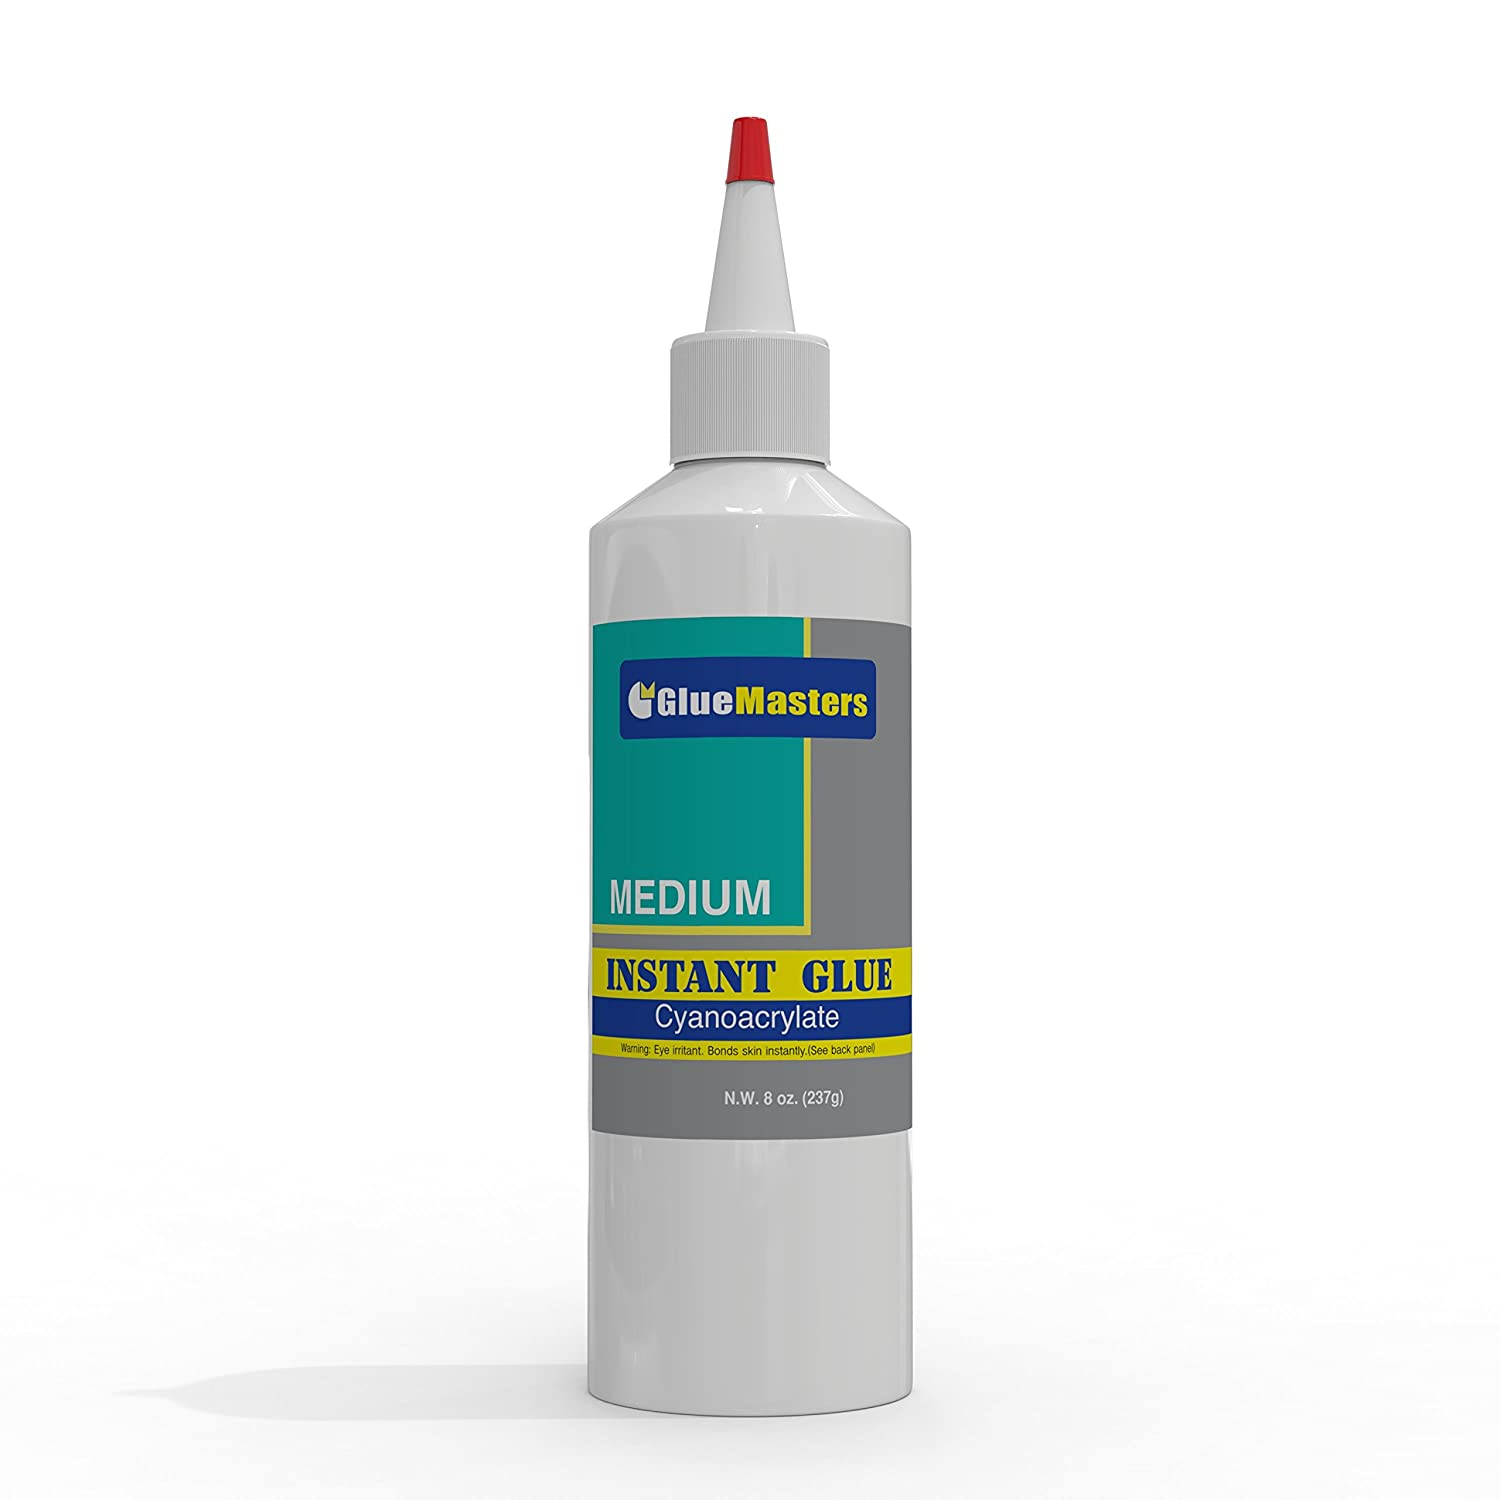 GLUE MASTER'S professional glue